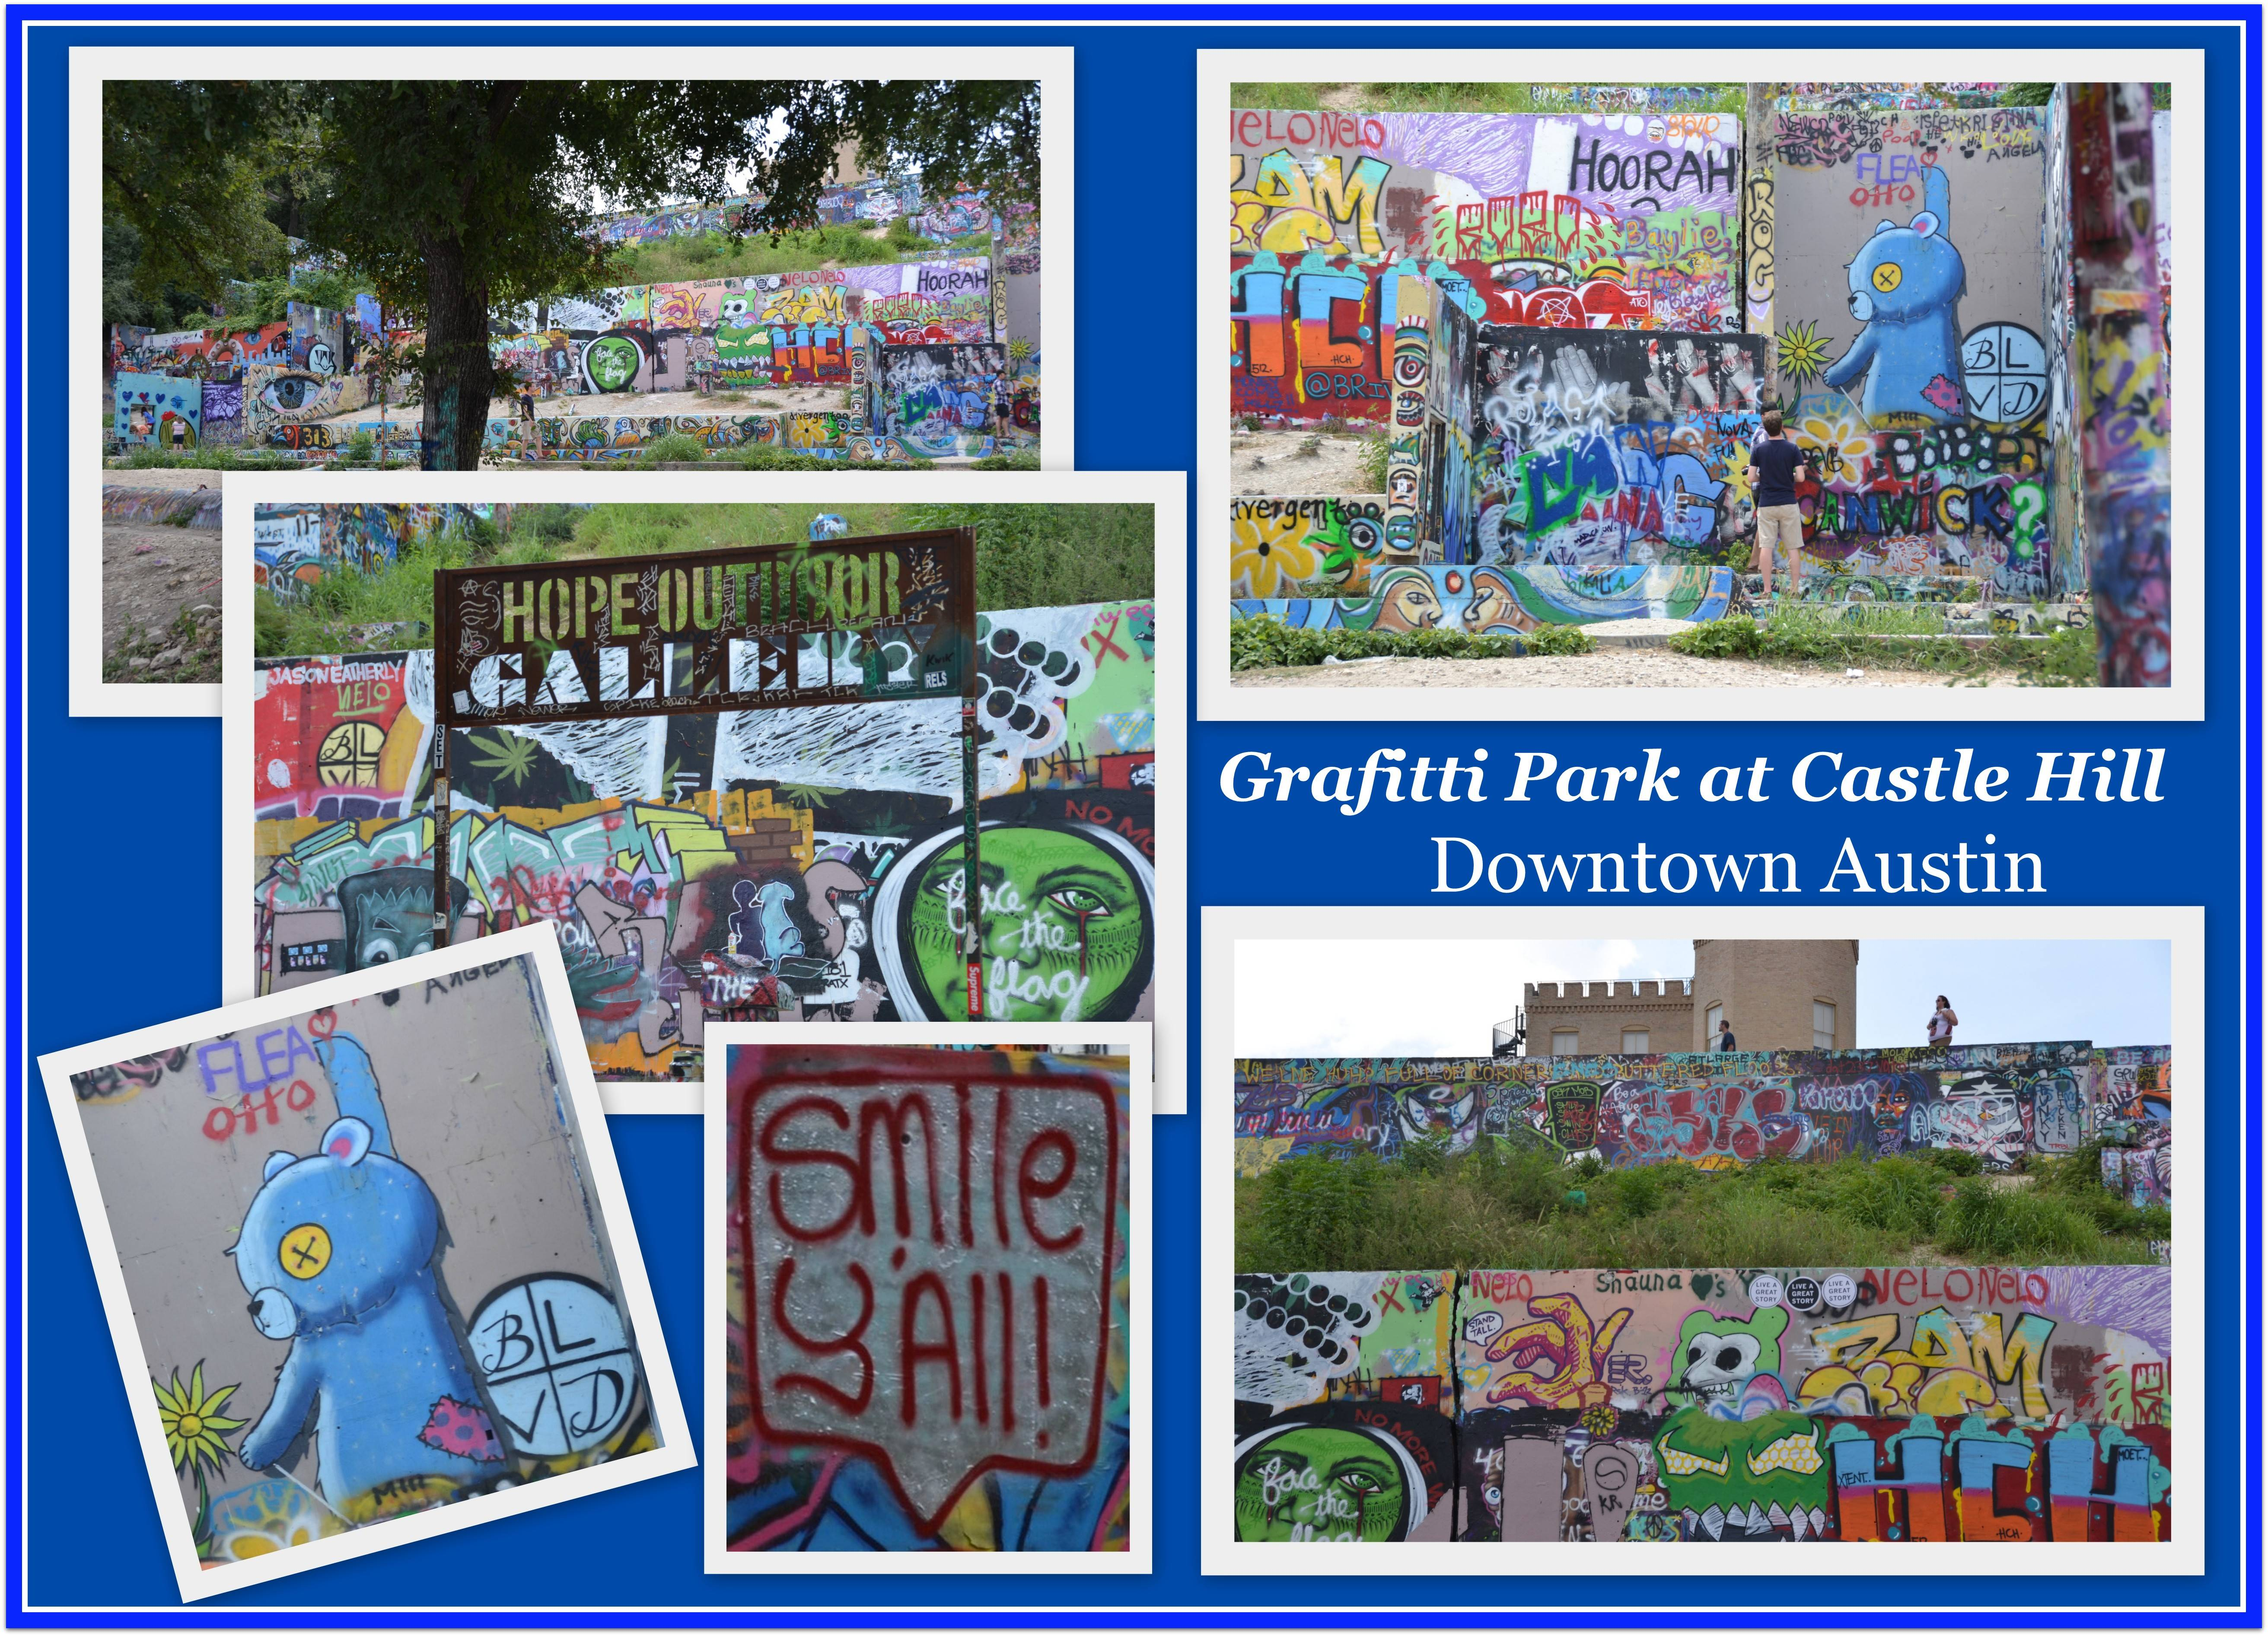 Graffiti park at castle hills or the hope outdoor galleryaustin tx